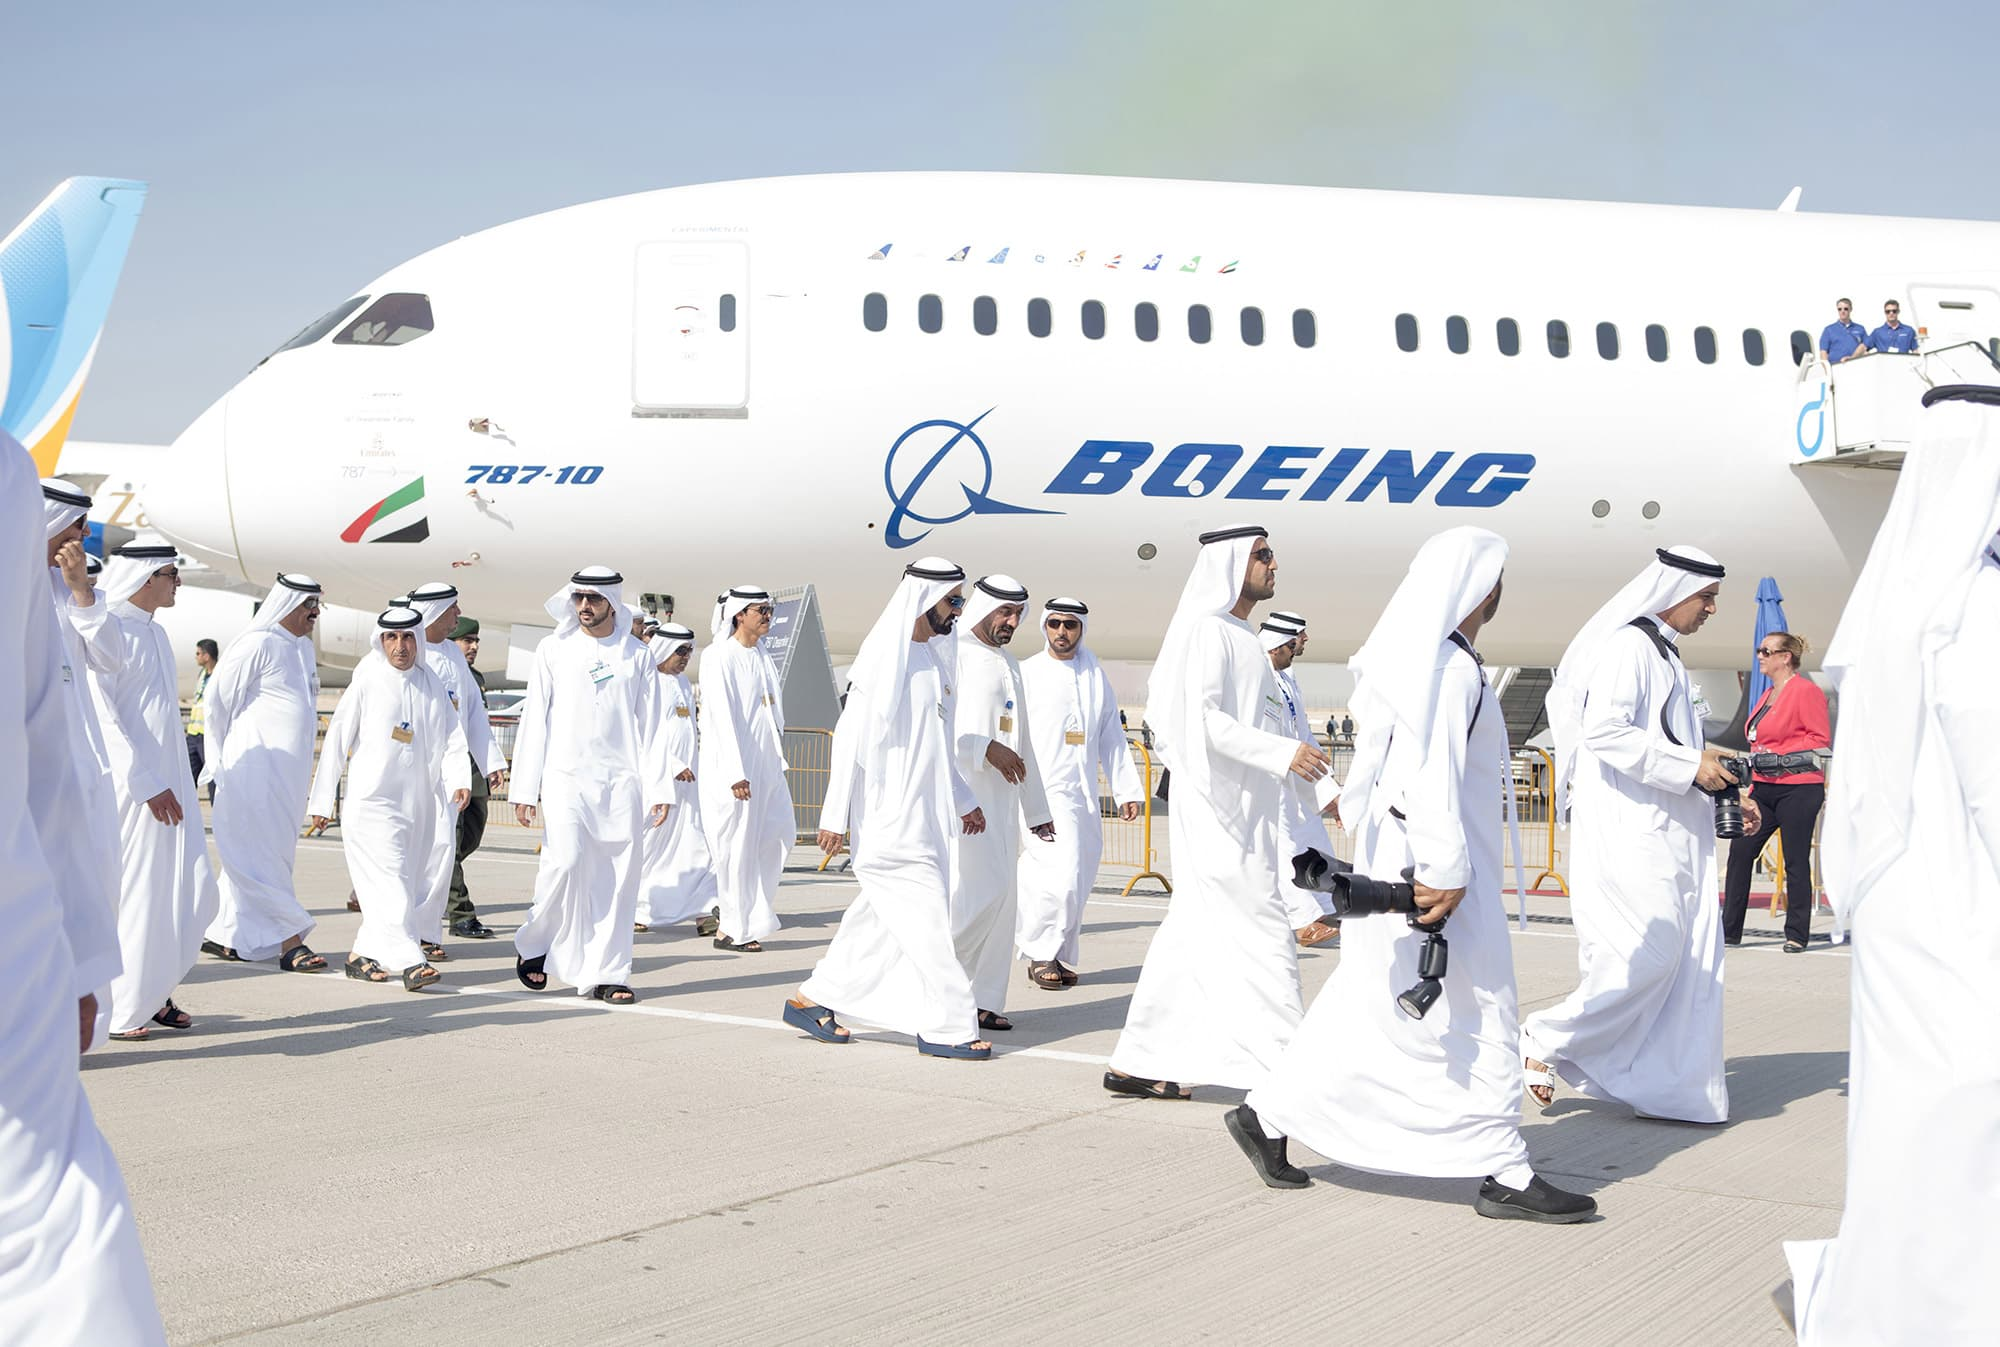 Emirates inks $9 billion order for 30 Boeing 787 jets, will restart plans to expand airline by early 2020s